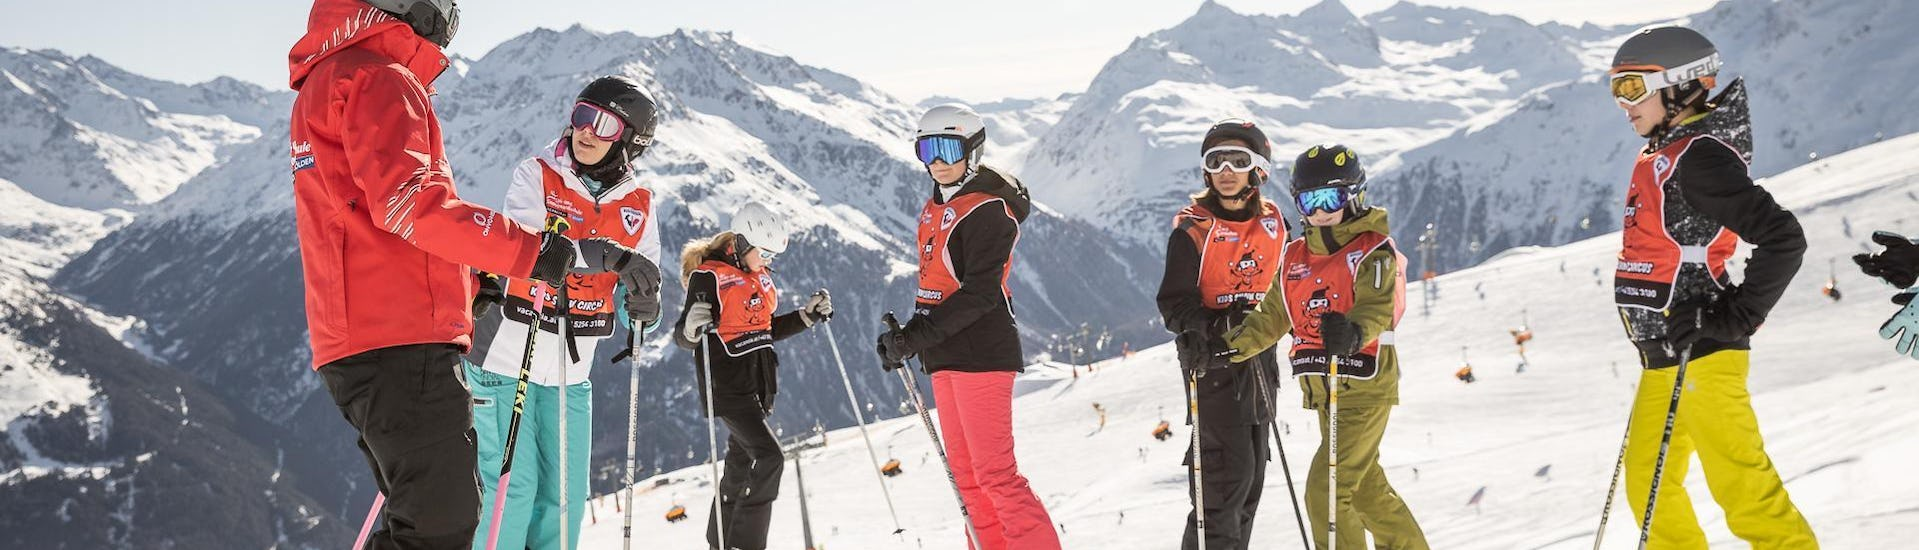 "A ski instructor and some young skiers smiling at the camera during the Kids Ski Lessons ""All-Inclusive"" (9-15 years) - All Levels organized by the ski school Ski & Snowboardschool Vacancia in the ski resort of Sölden."